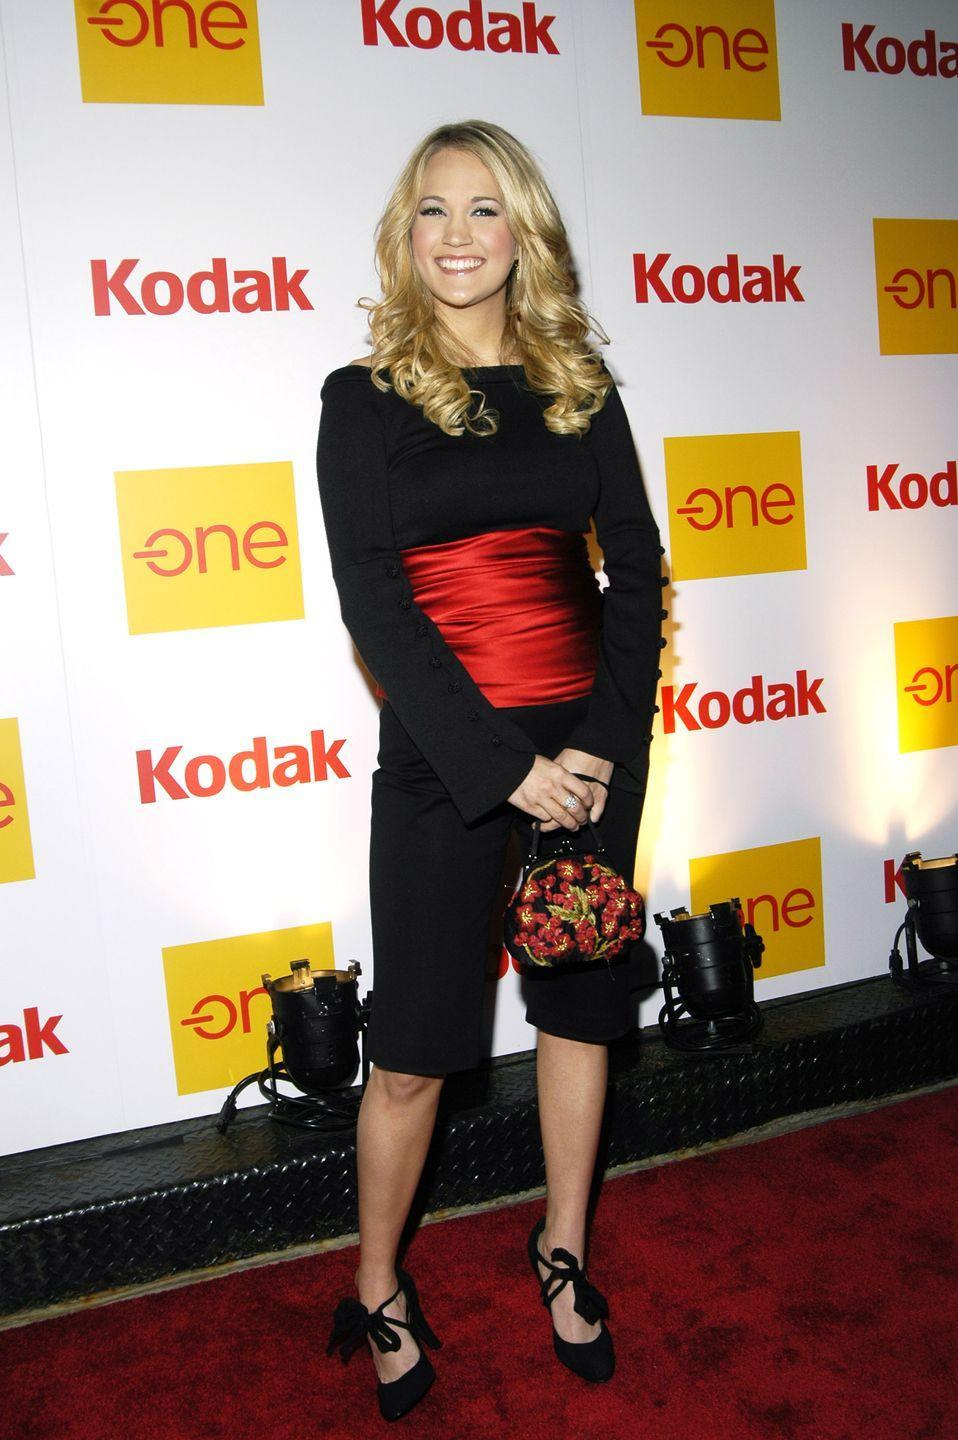 <p>Carrie wrapped herself up like a present with a red satin ribbon at the Country Takes New York City event.</p>